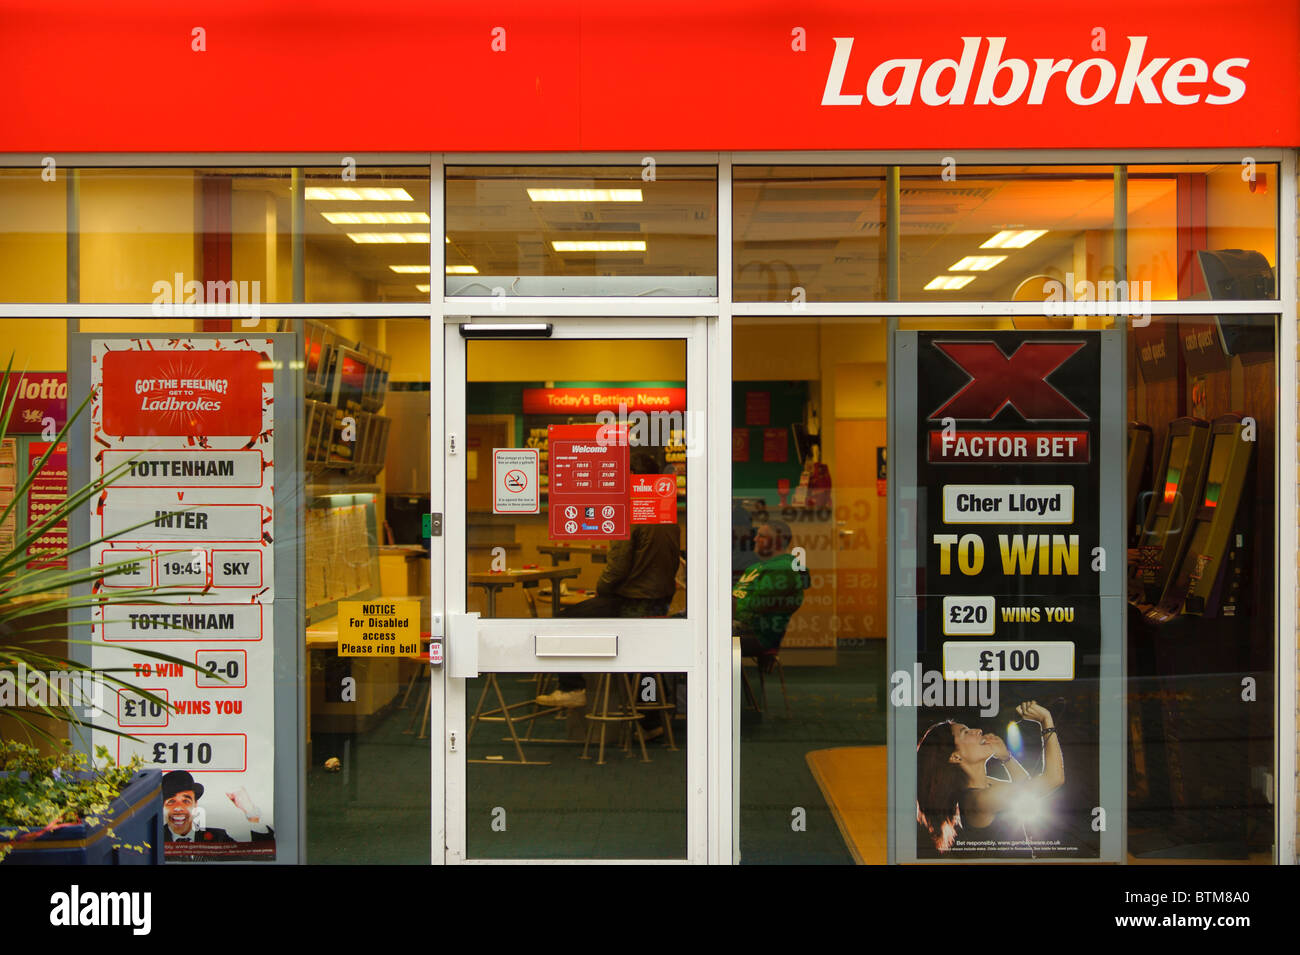 Ladbrokes betting shop bookies, Cardiff wales UK - Stock Image